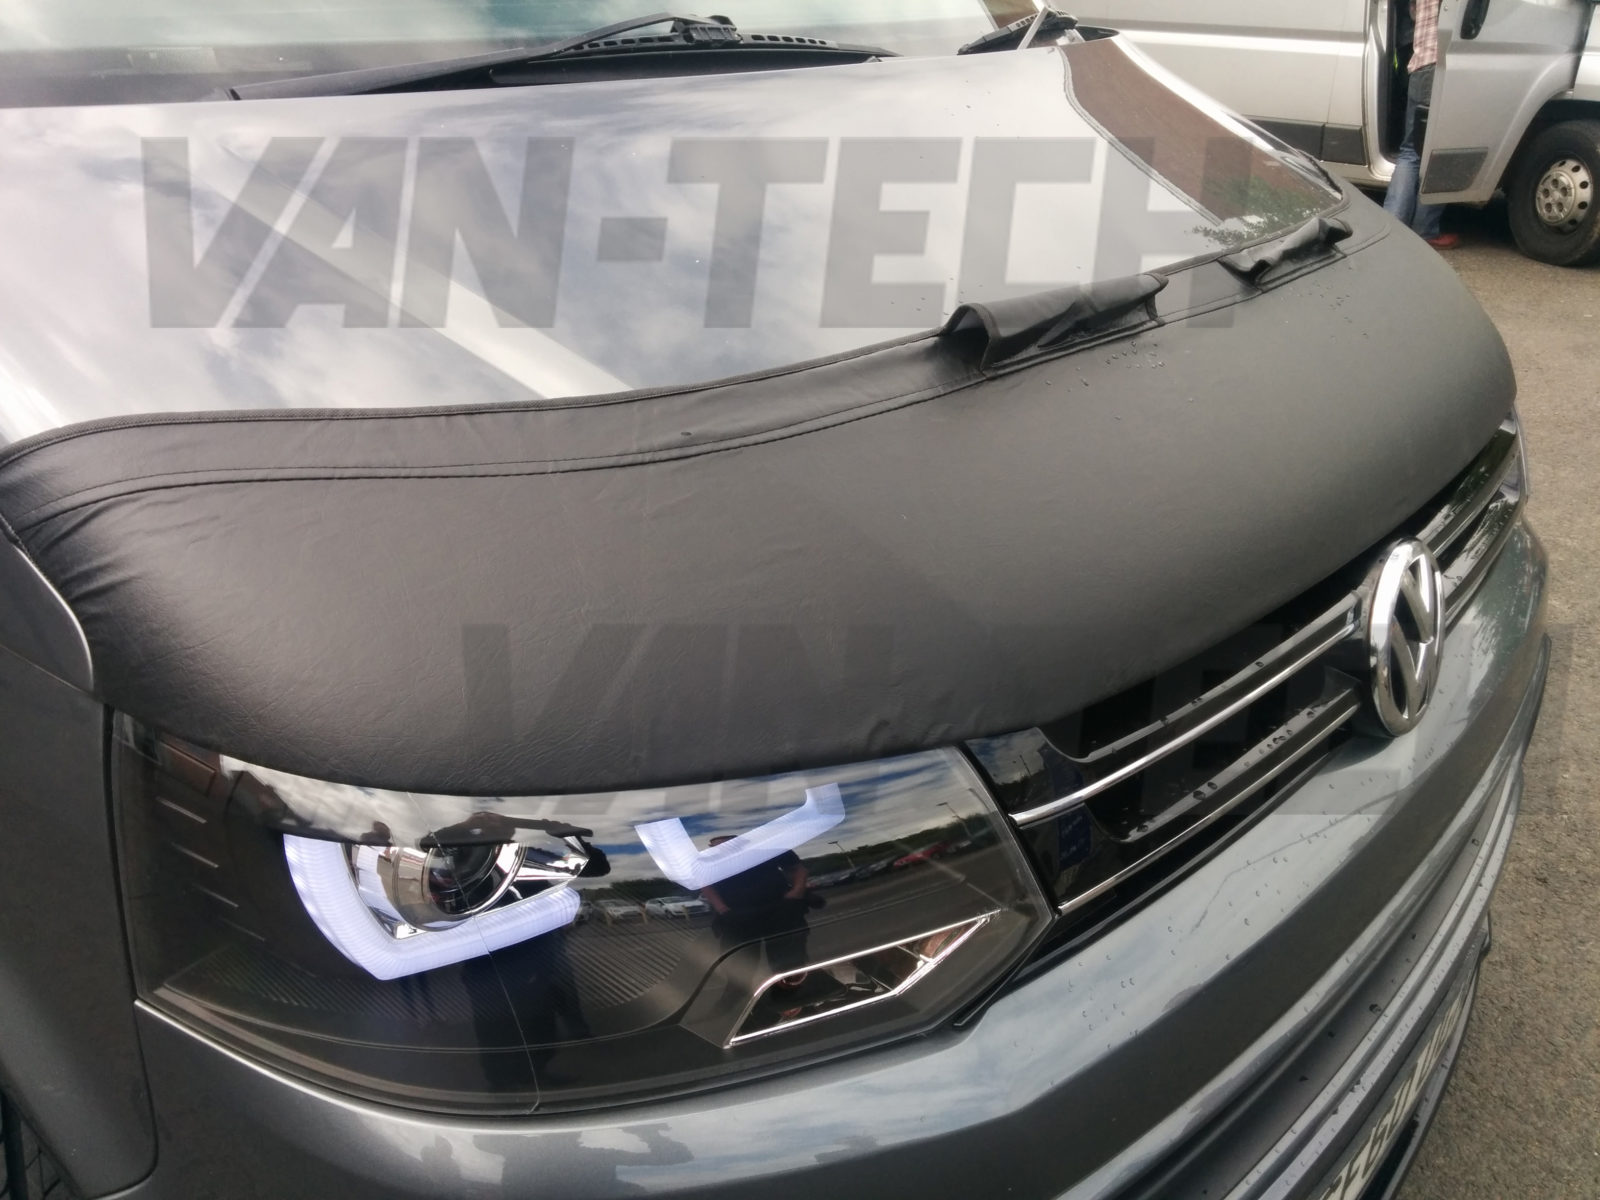 VW T5 Transporter Bonnet Bra Half fits facelift models 2010 , 2016